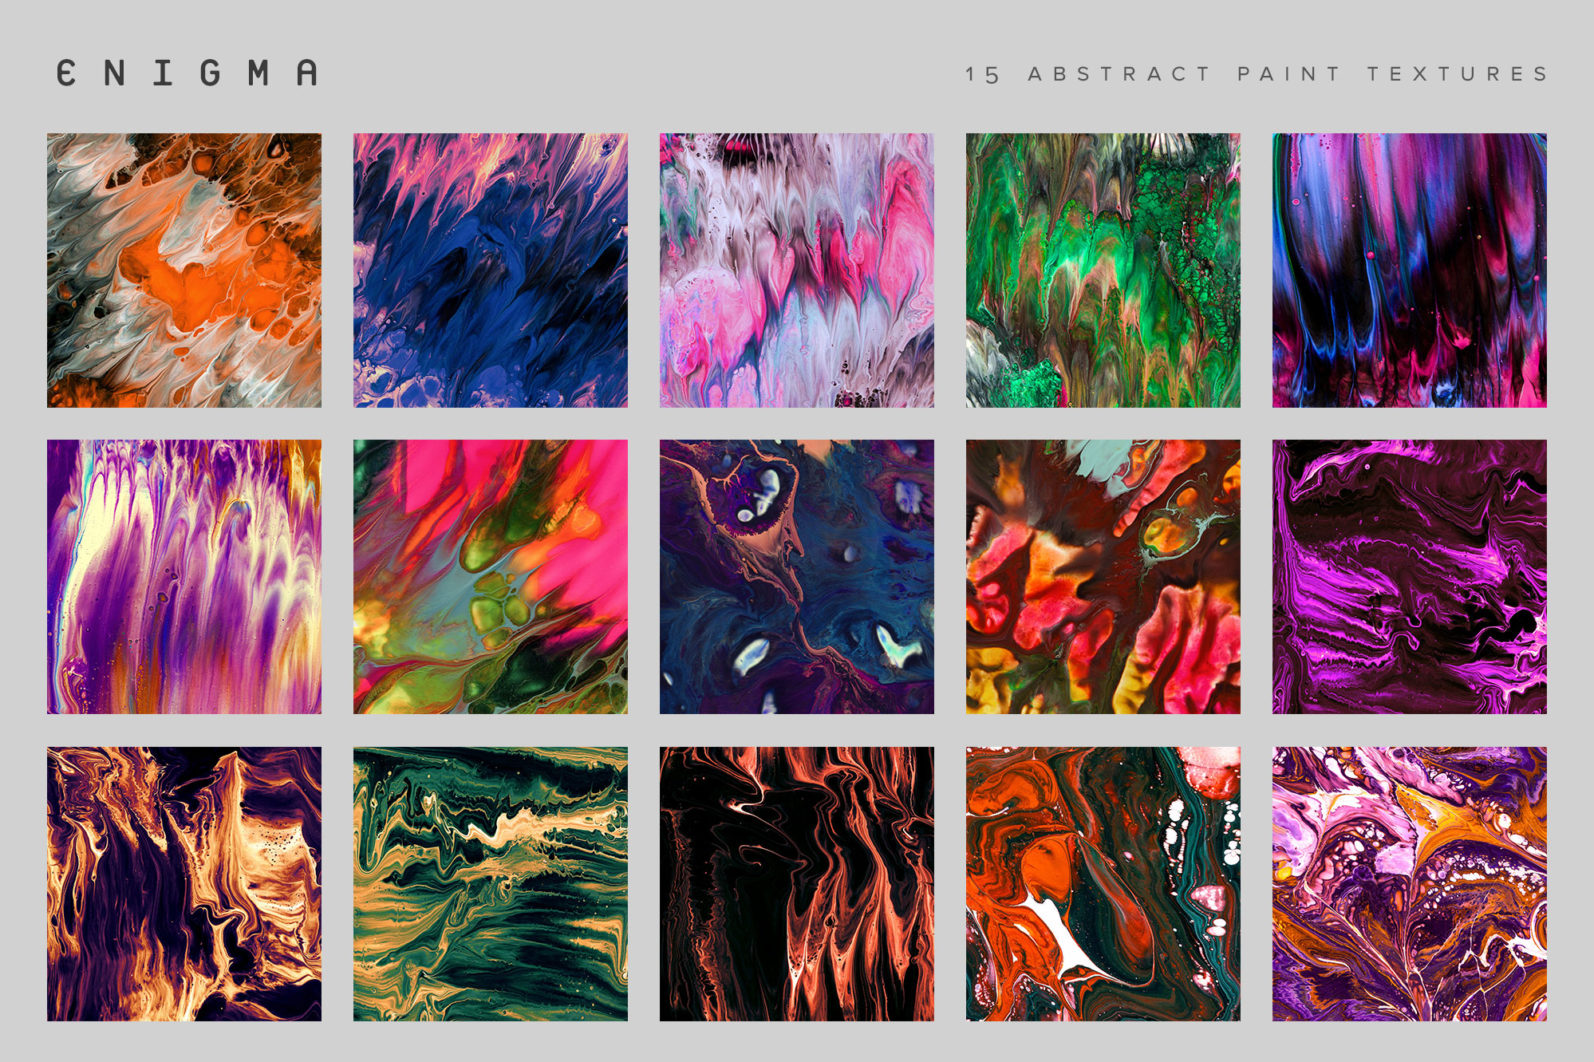 Enigma: 15 Abstract Paint Textures - 10 Enigma Product imagery Indiv -